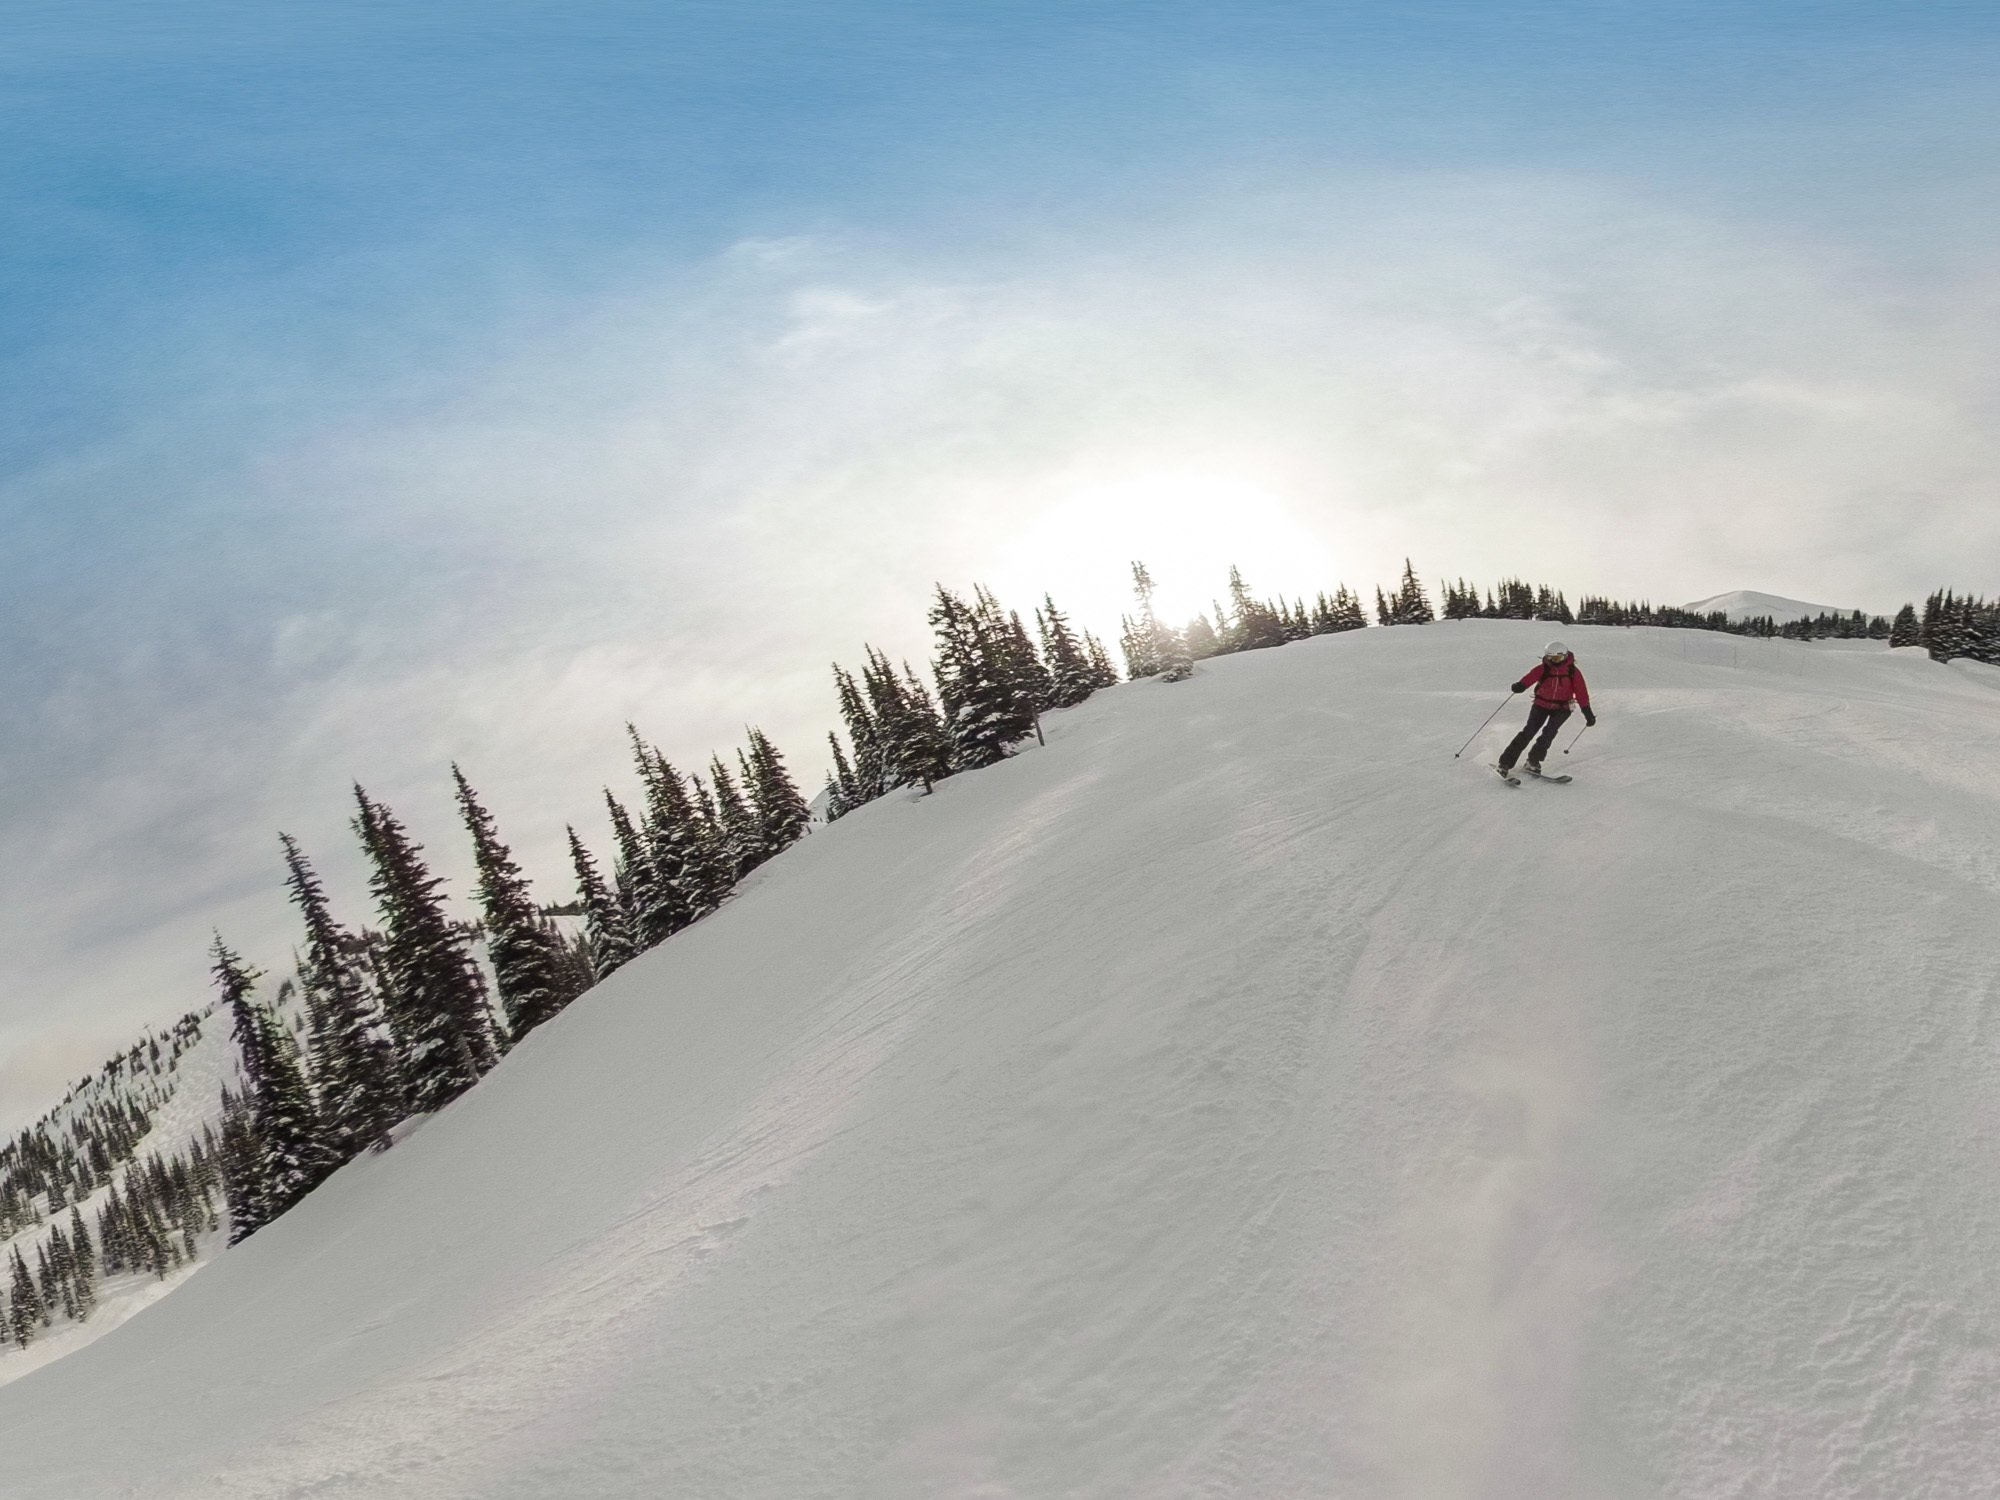 Marmot Basin // Plan the ultimate winter getaway in the Canadian Rockies. This 4-day Jasper National Park winter itinerary gives you an adventurous day-by-day plan, plus info on how to get to Jasper, the best restaurants & where to stay.